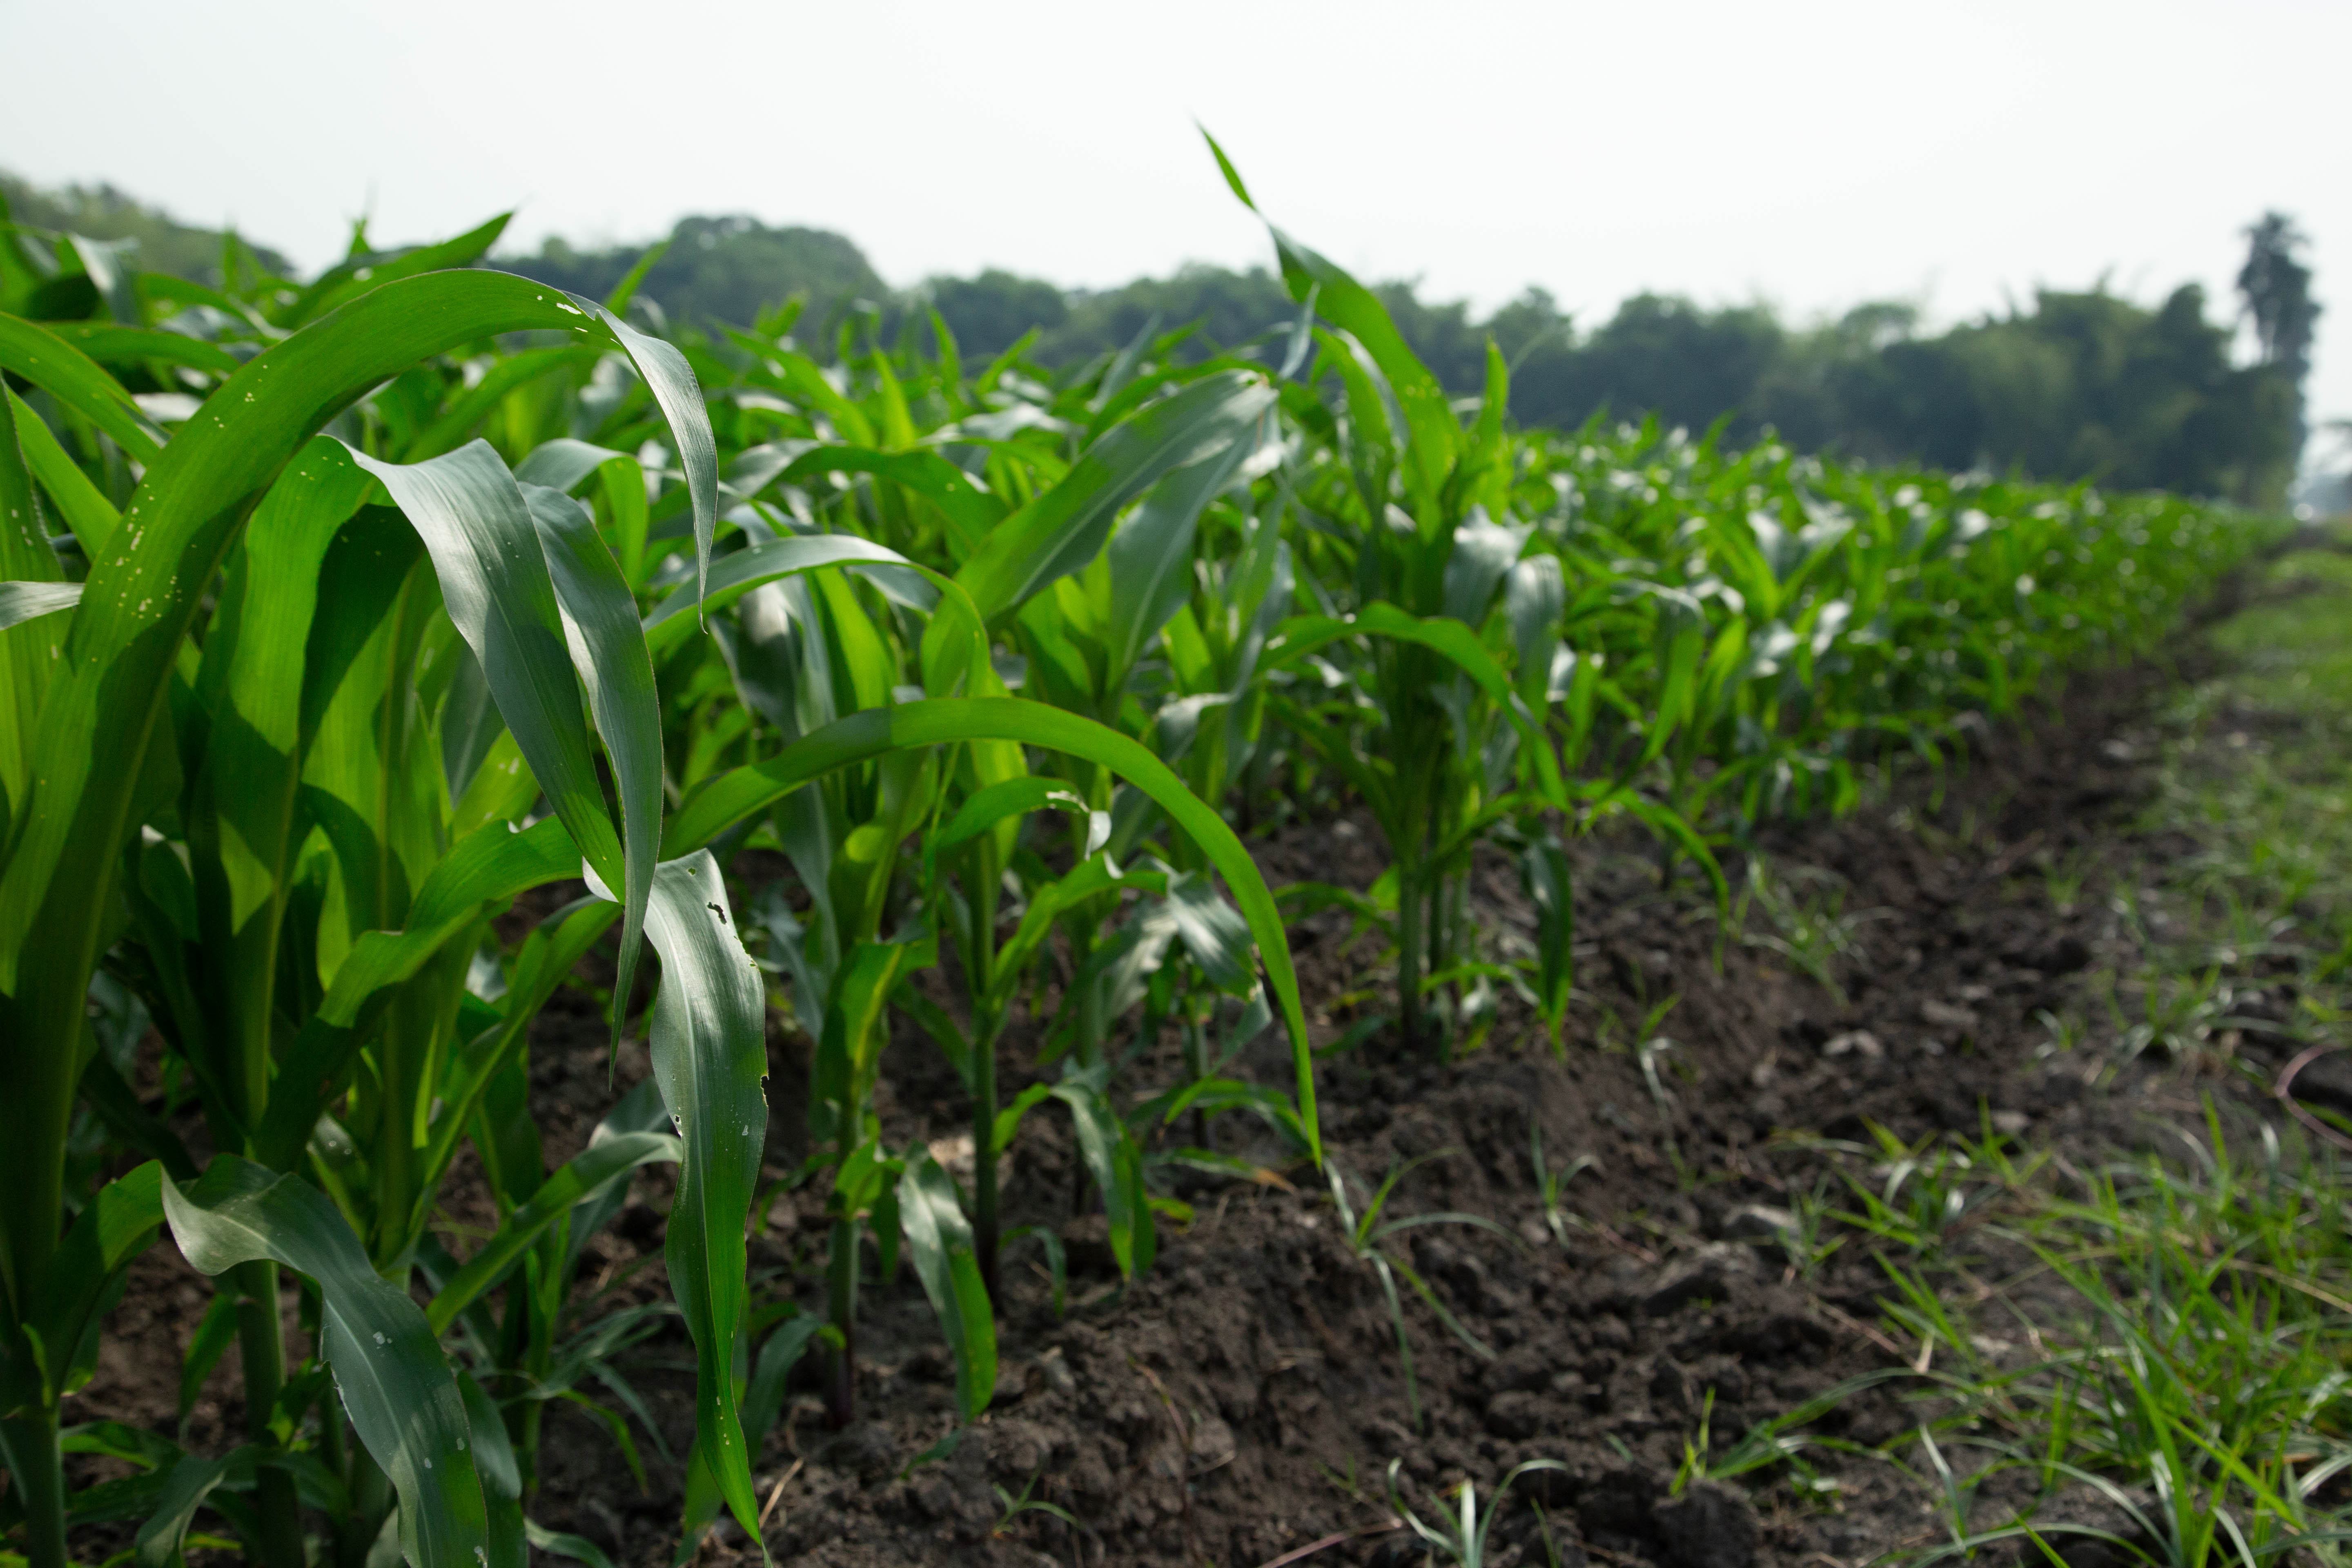 A row of young corn plants at the International Center for Tropical Agriculture (CIAT) in Cali, Colombia. Photographer Jacquelyn Turner, ACToday/IRI.